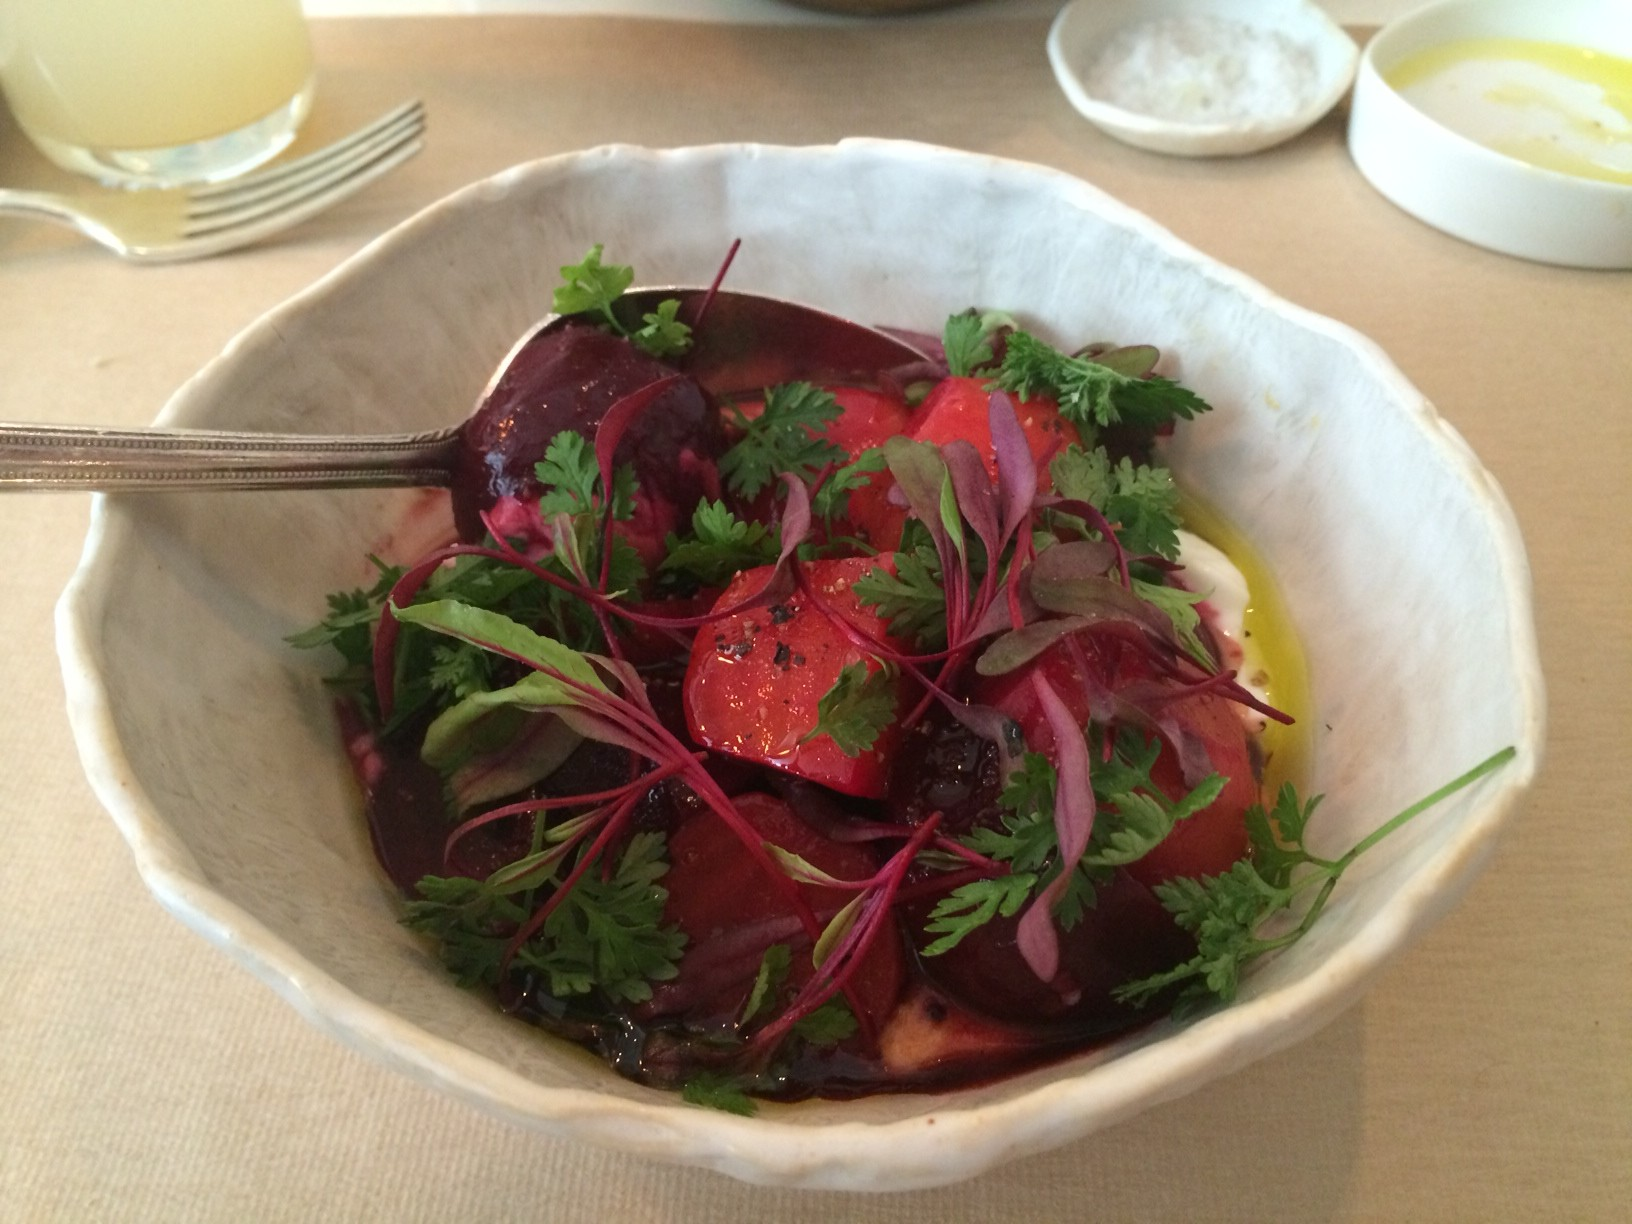 Abc Kitchen Nyc Reservations Healthiest And Hippest Lunch At Abc Kitchen Flatiron Nyc The